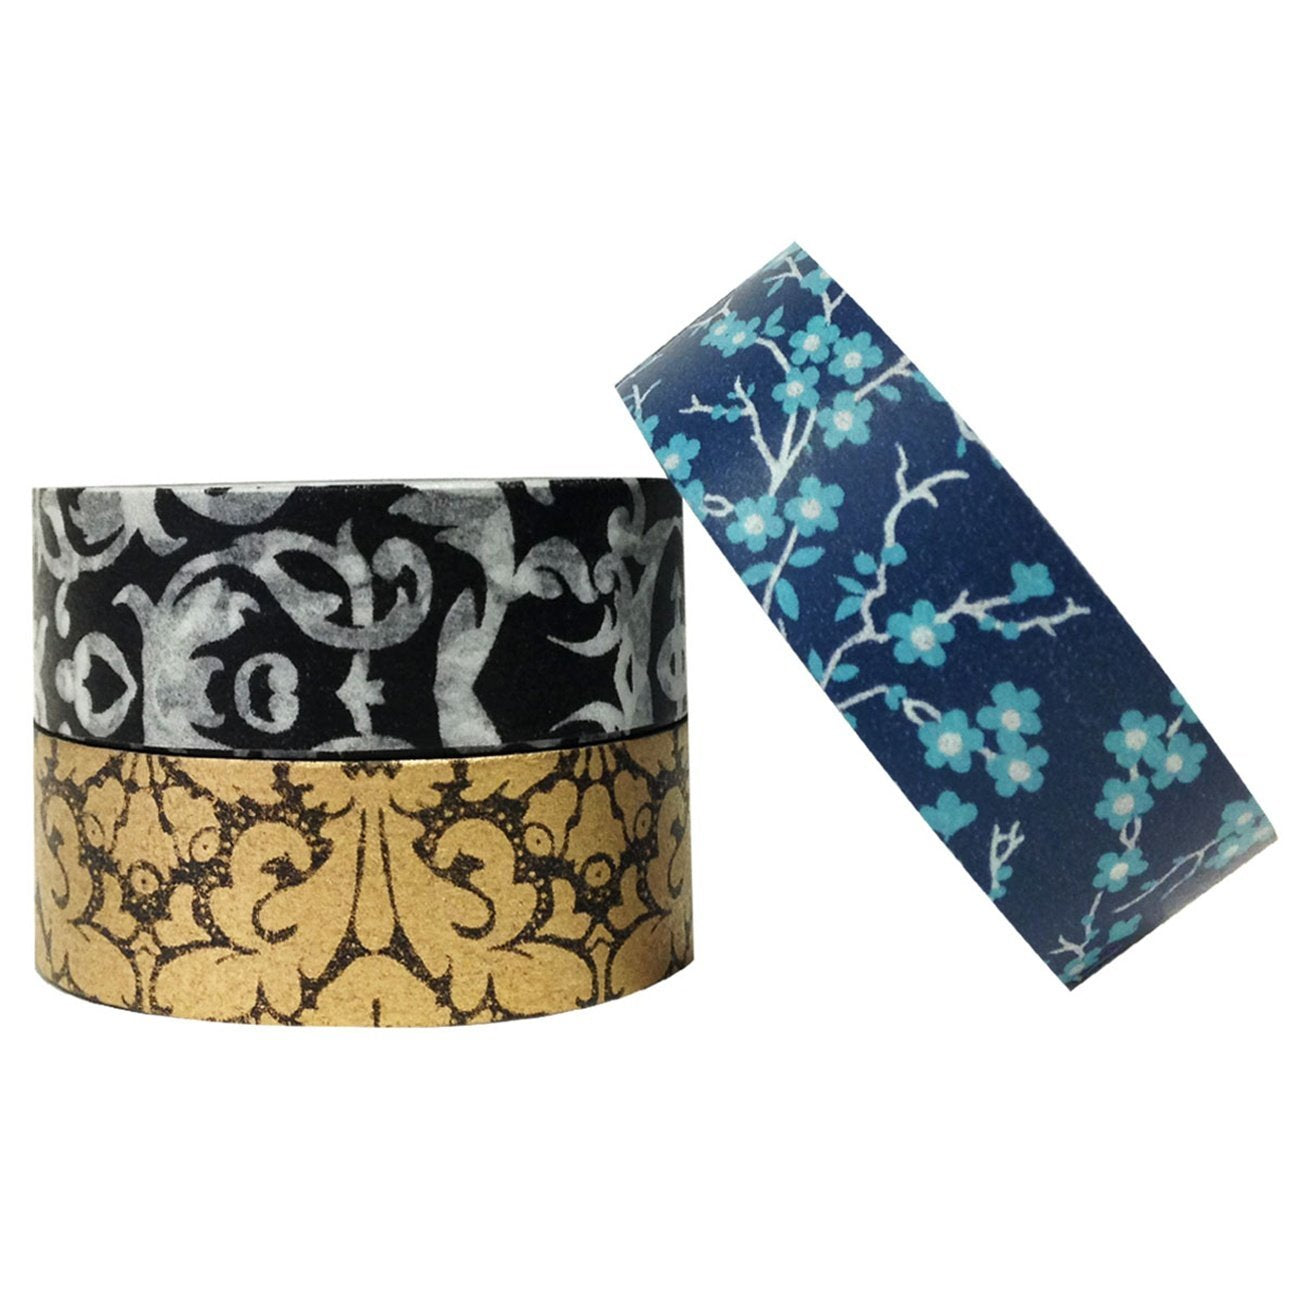 Wrapables Enchantment Japanese Washi Masking Tape (set of 3)